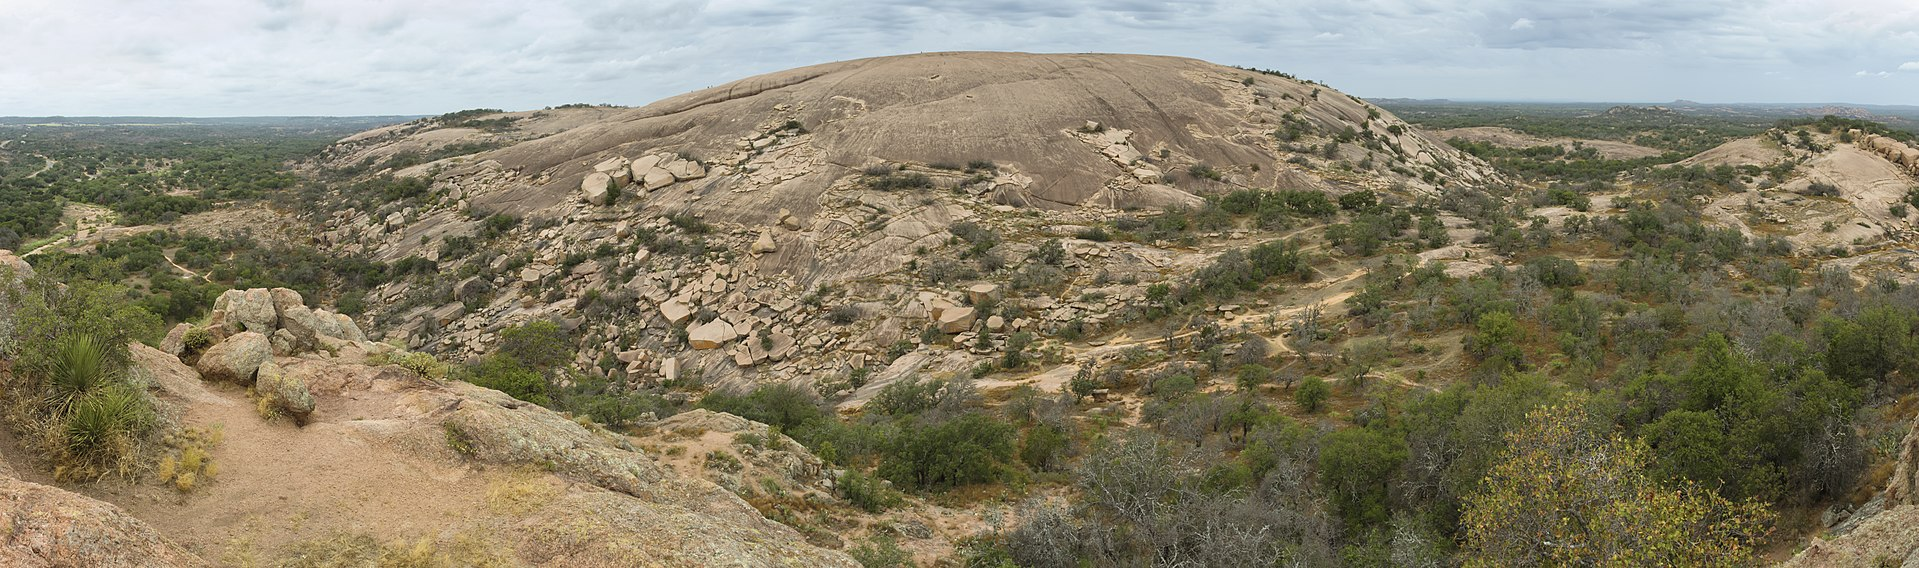 1920px-Enchanted_Rock_Panorama_2012.jpg